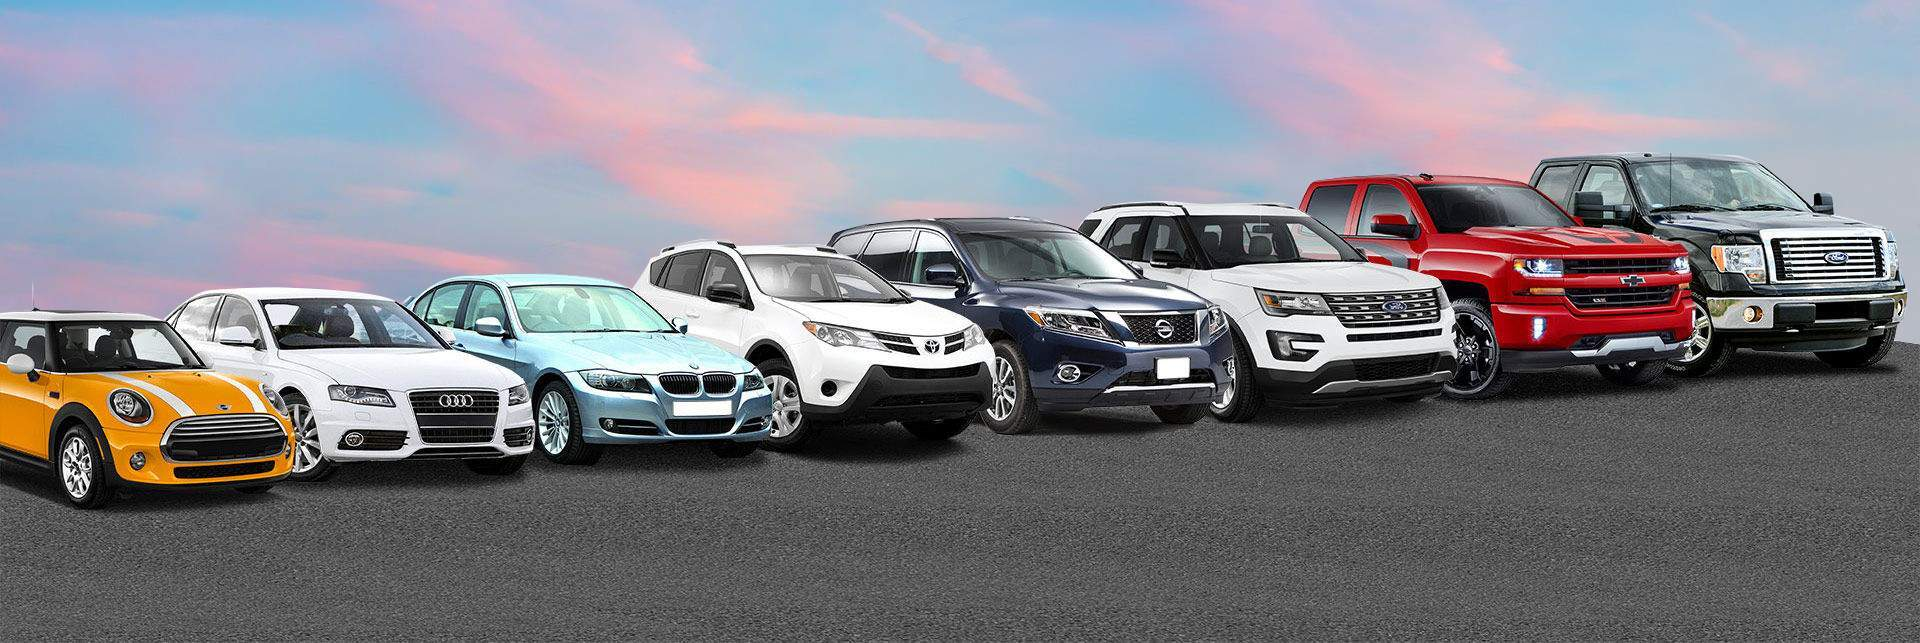 Used Cars Melbourne FL Used Cars Trucks And SUVs Autowise - Used cars